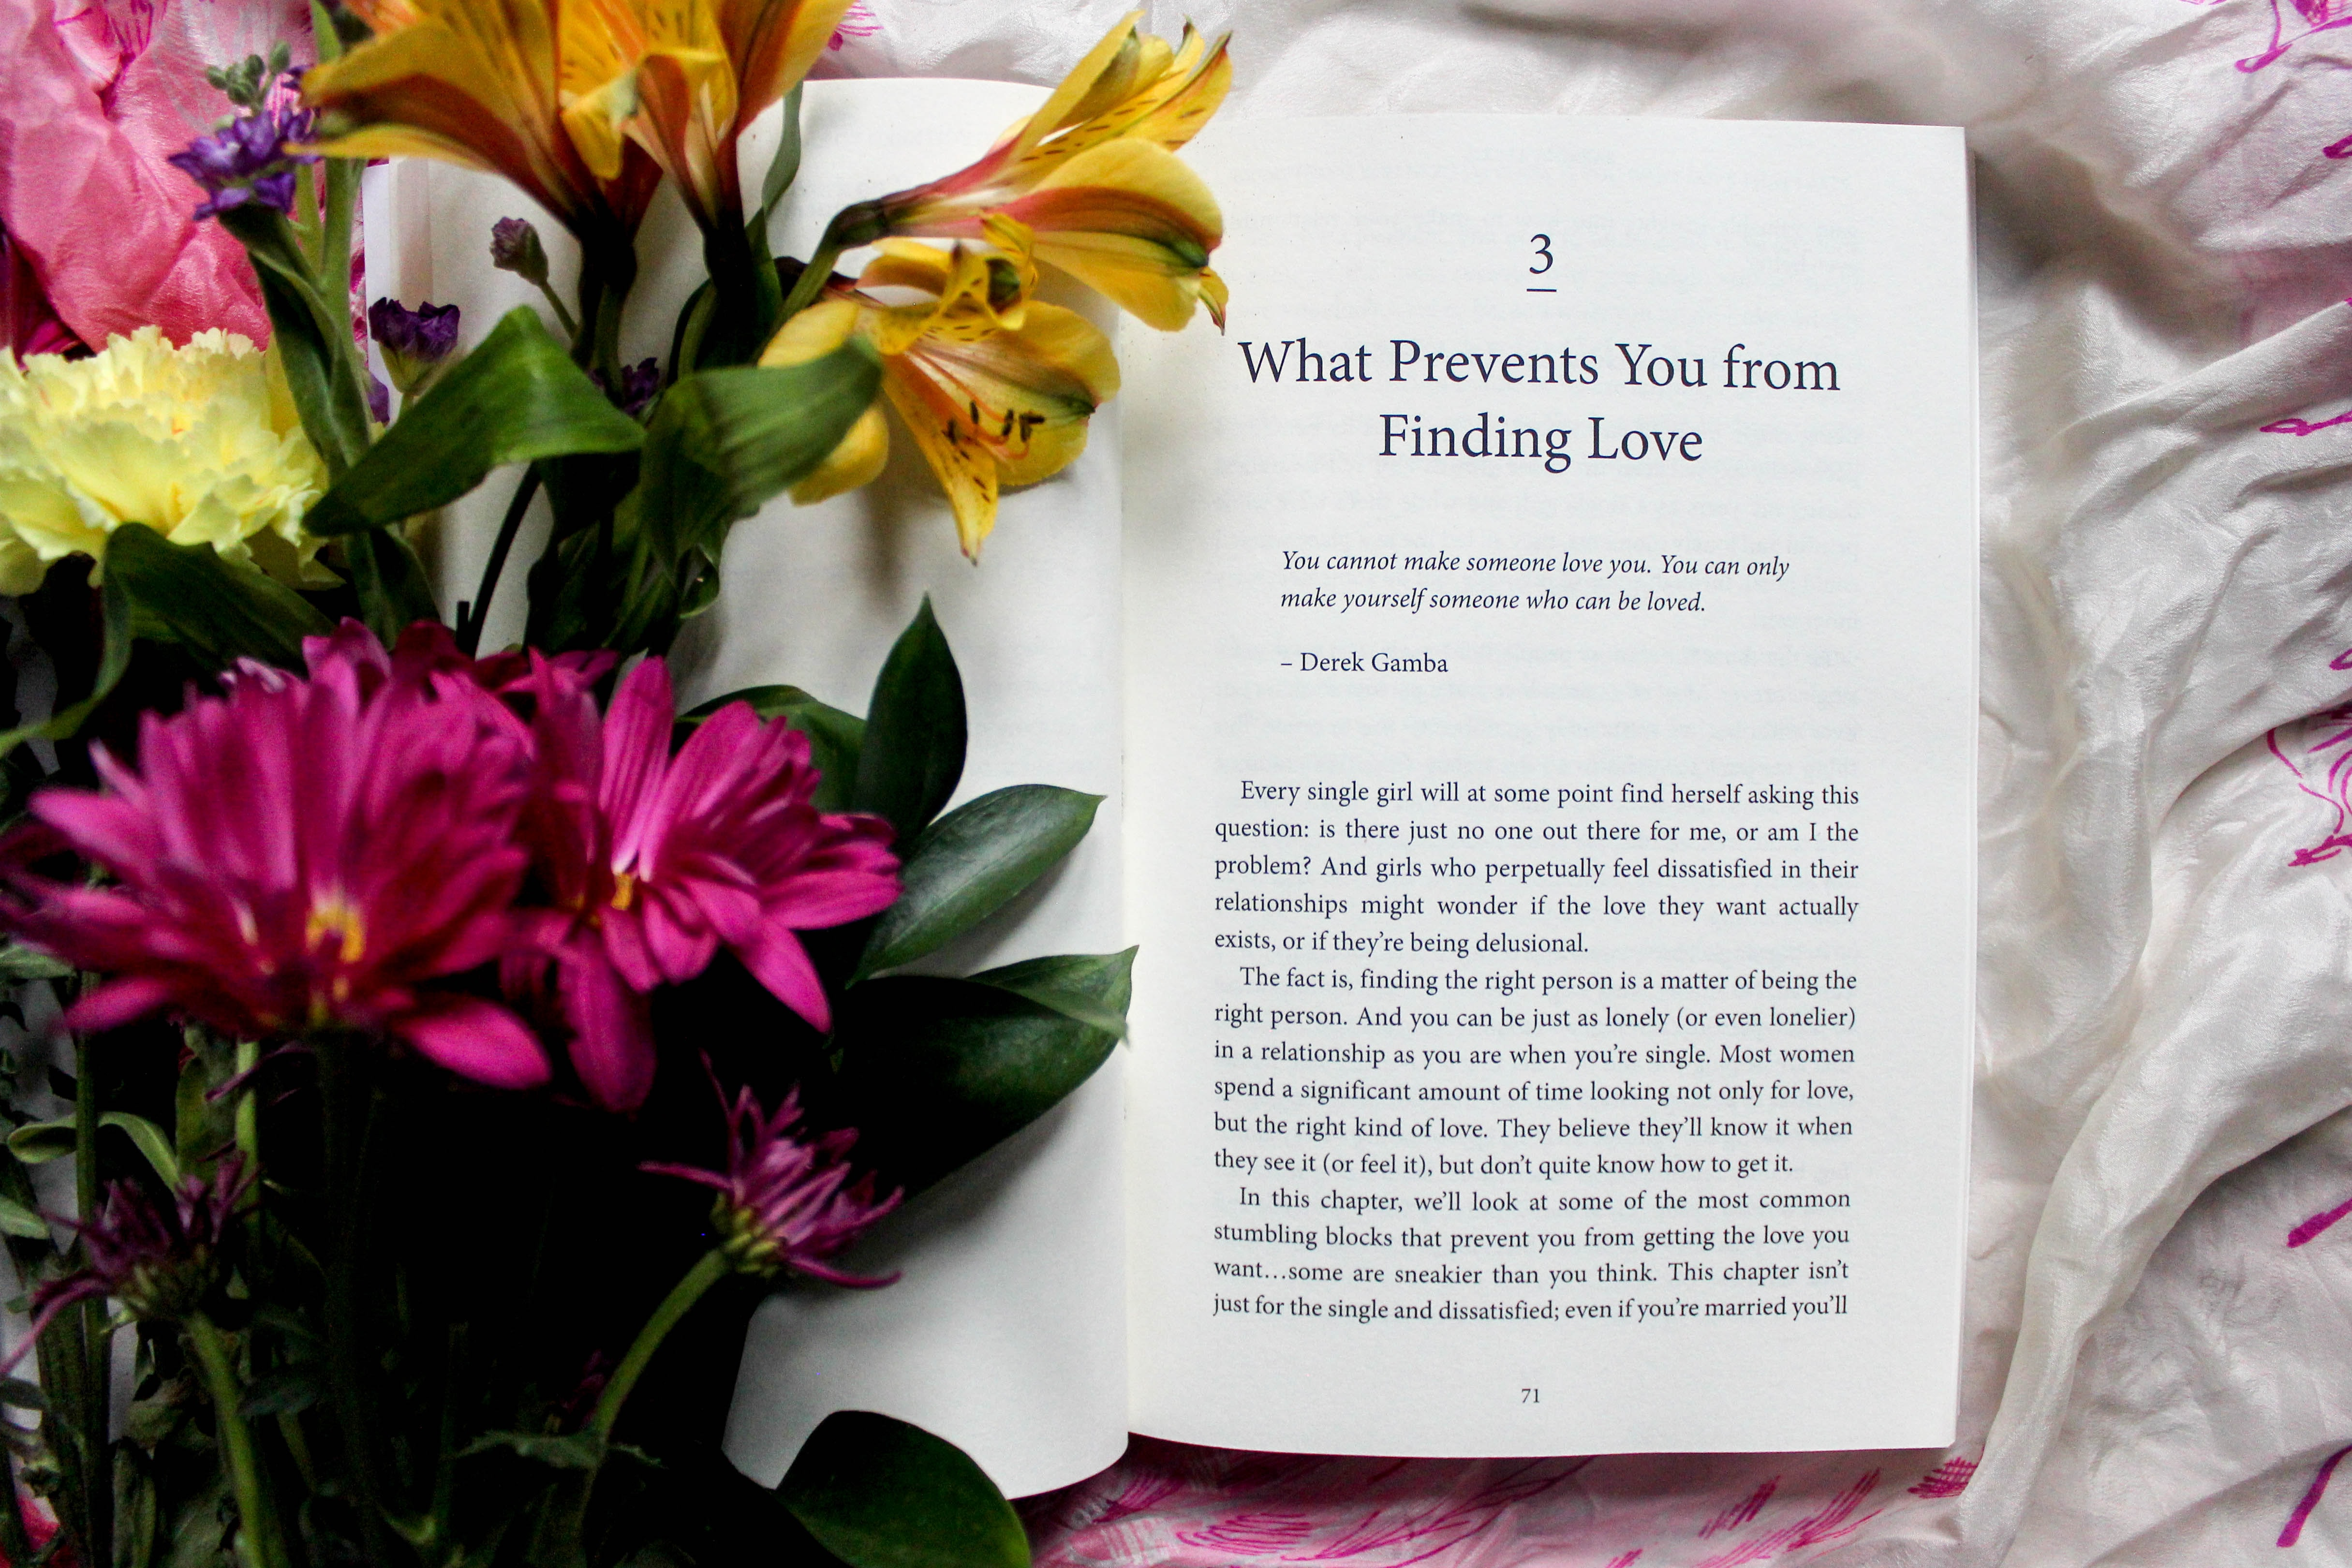 reading book beside pink, yellow, and green petaled flower bouquet